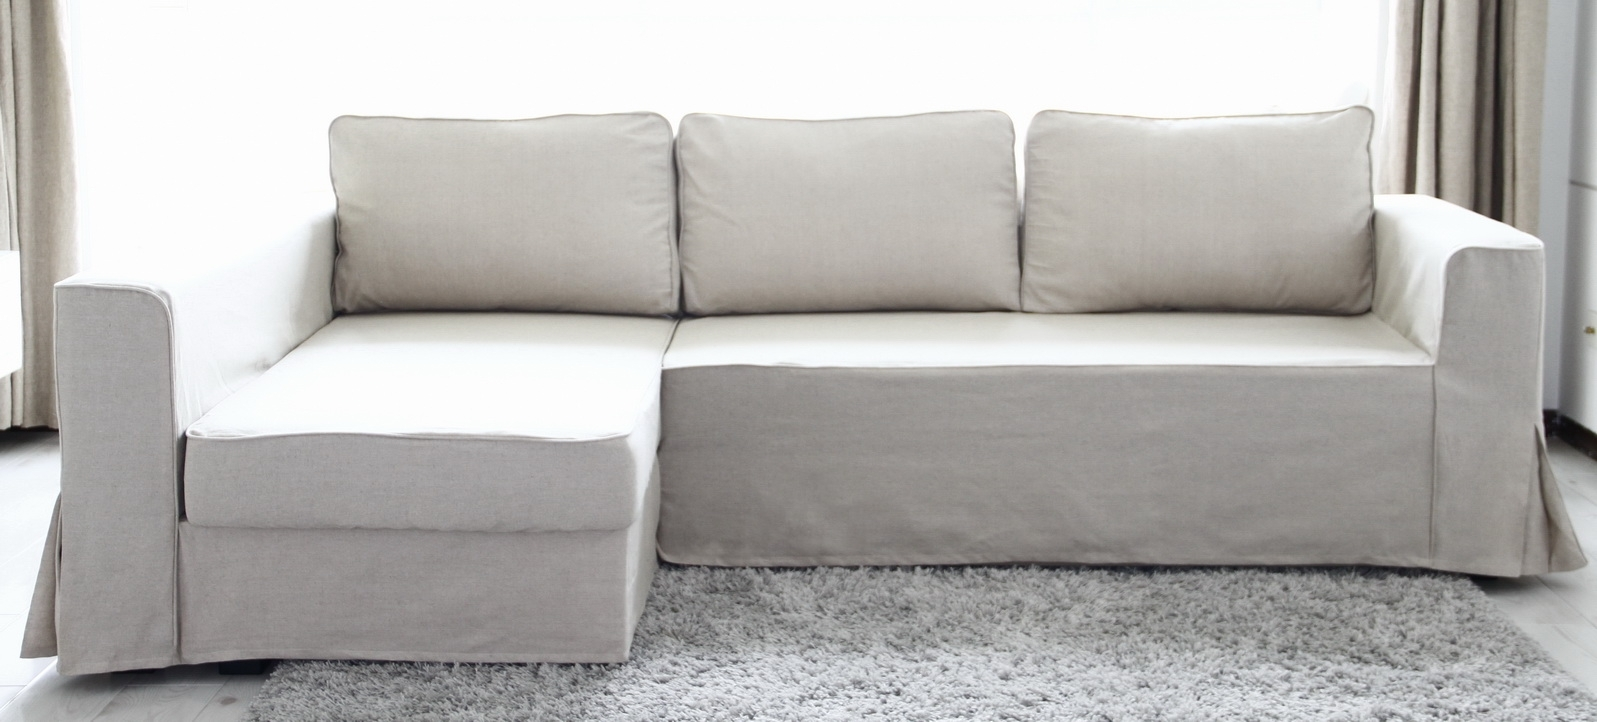 Loose Fit Linen Manstad Sofa Slipcovers Now Available Inside Manstad Sofas (View 9 of 10)